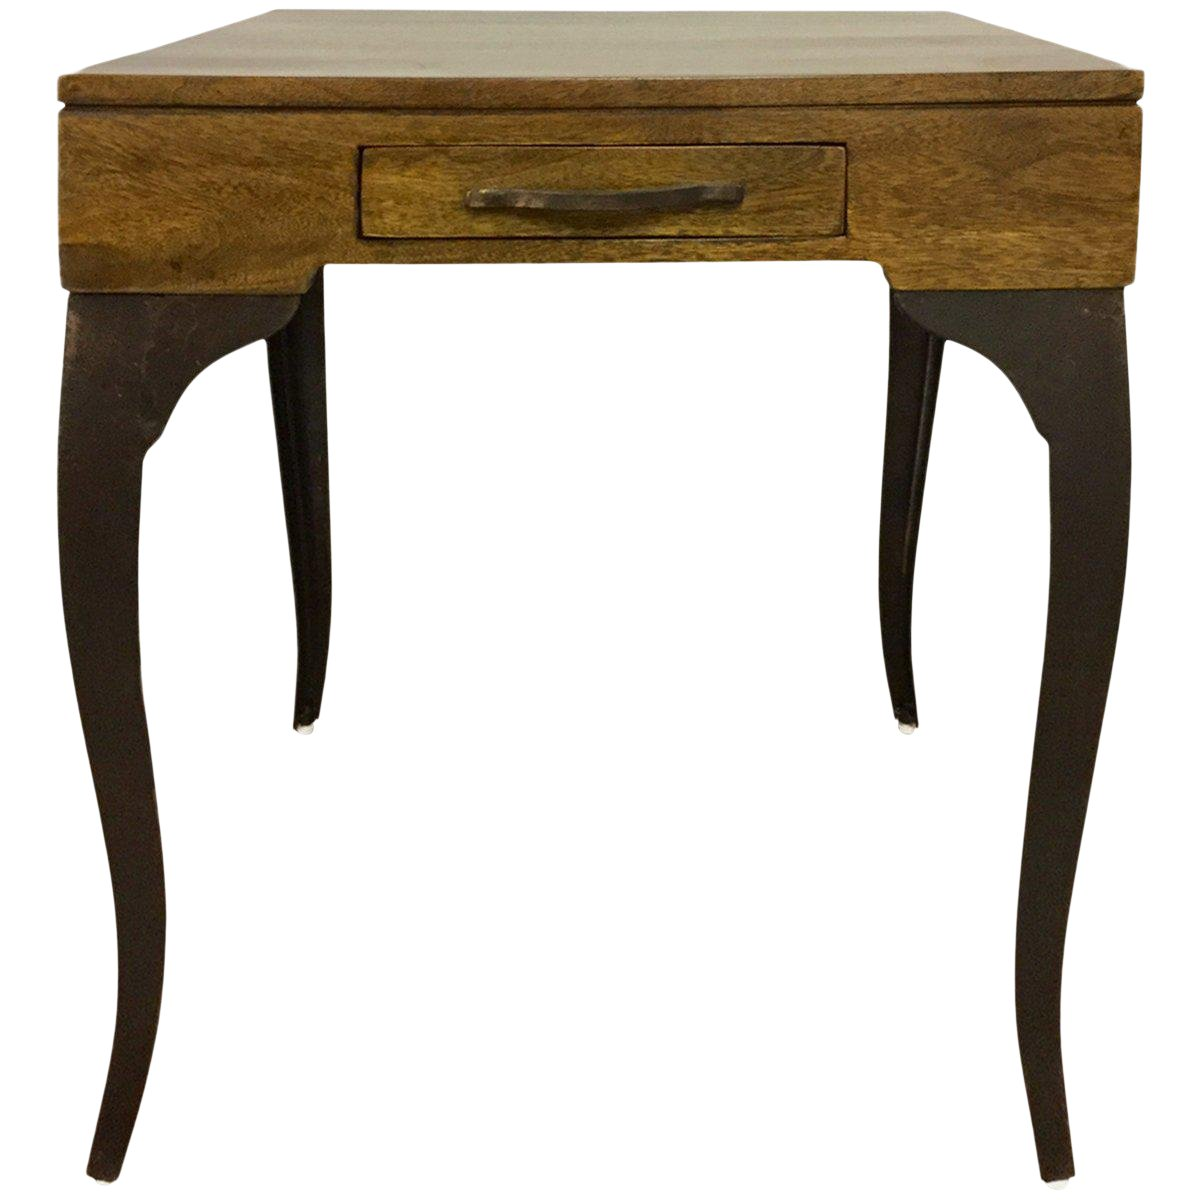 melange accent storage end table with cabriole legs one drawer wooden top living room wood and metal furniture natural chairish outdoor corner modern tables white bedside unit